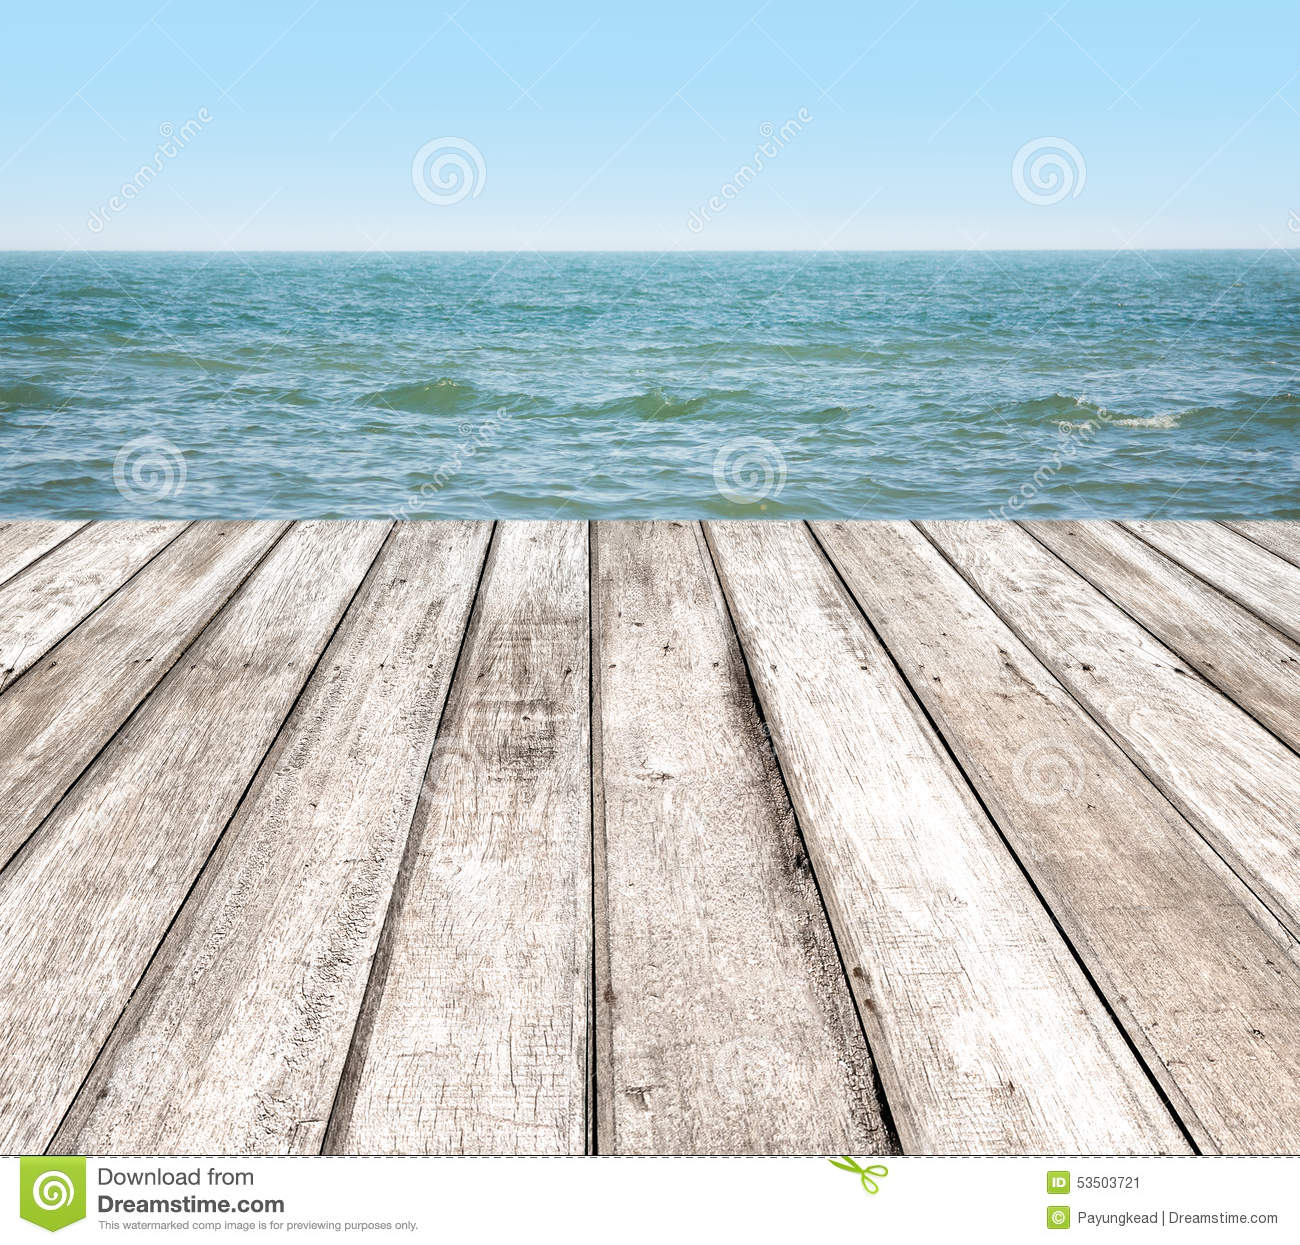 Wood Floor On Beach Sea And Blue Sky For Background Stock: Wooden Pier With Blue Sea Stock Image. Image Of Background